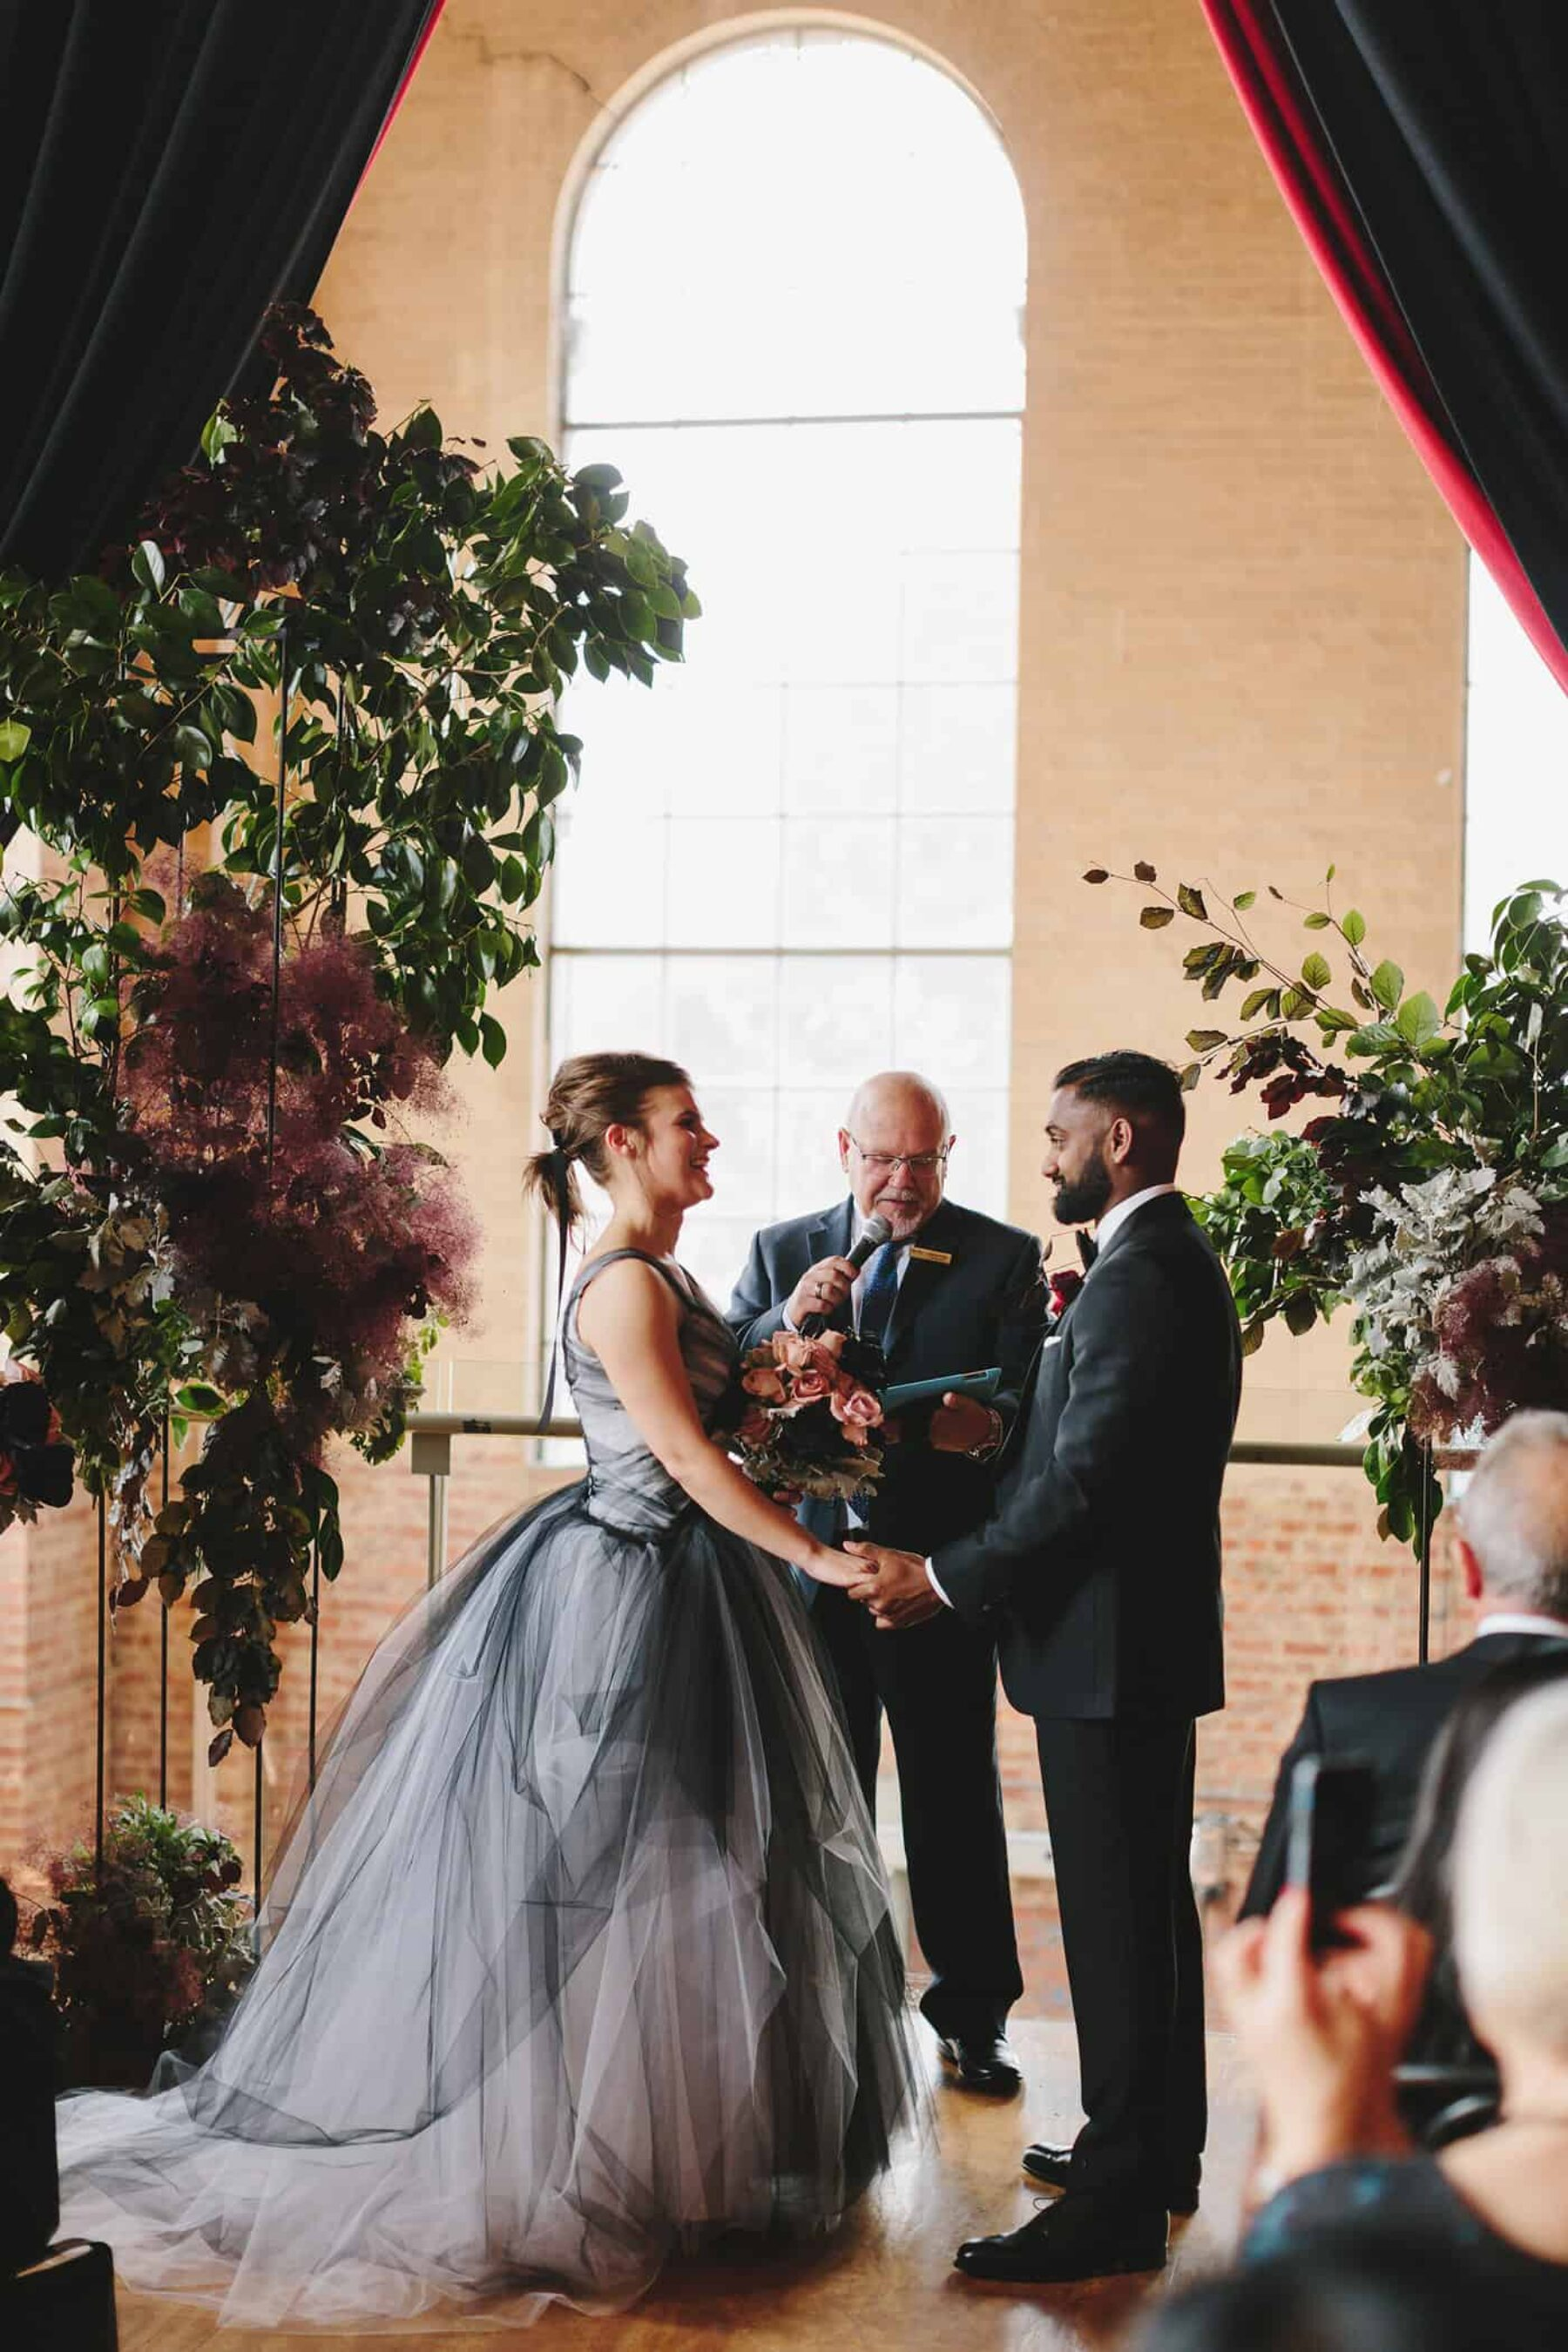 Newport Substation wedding Melbourne / photography by Jonathan Ong